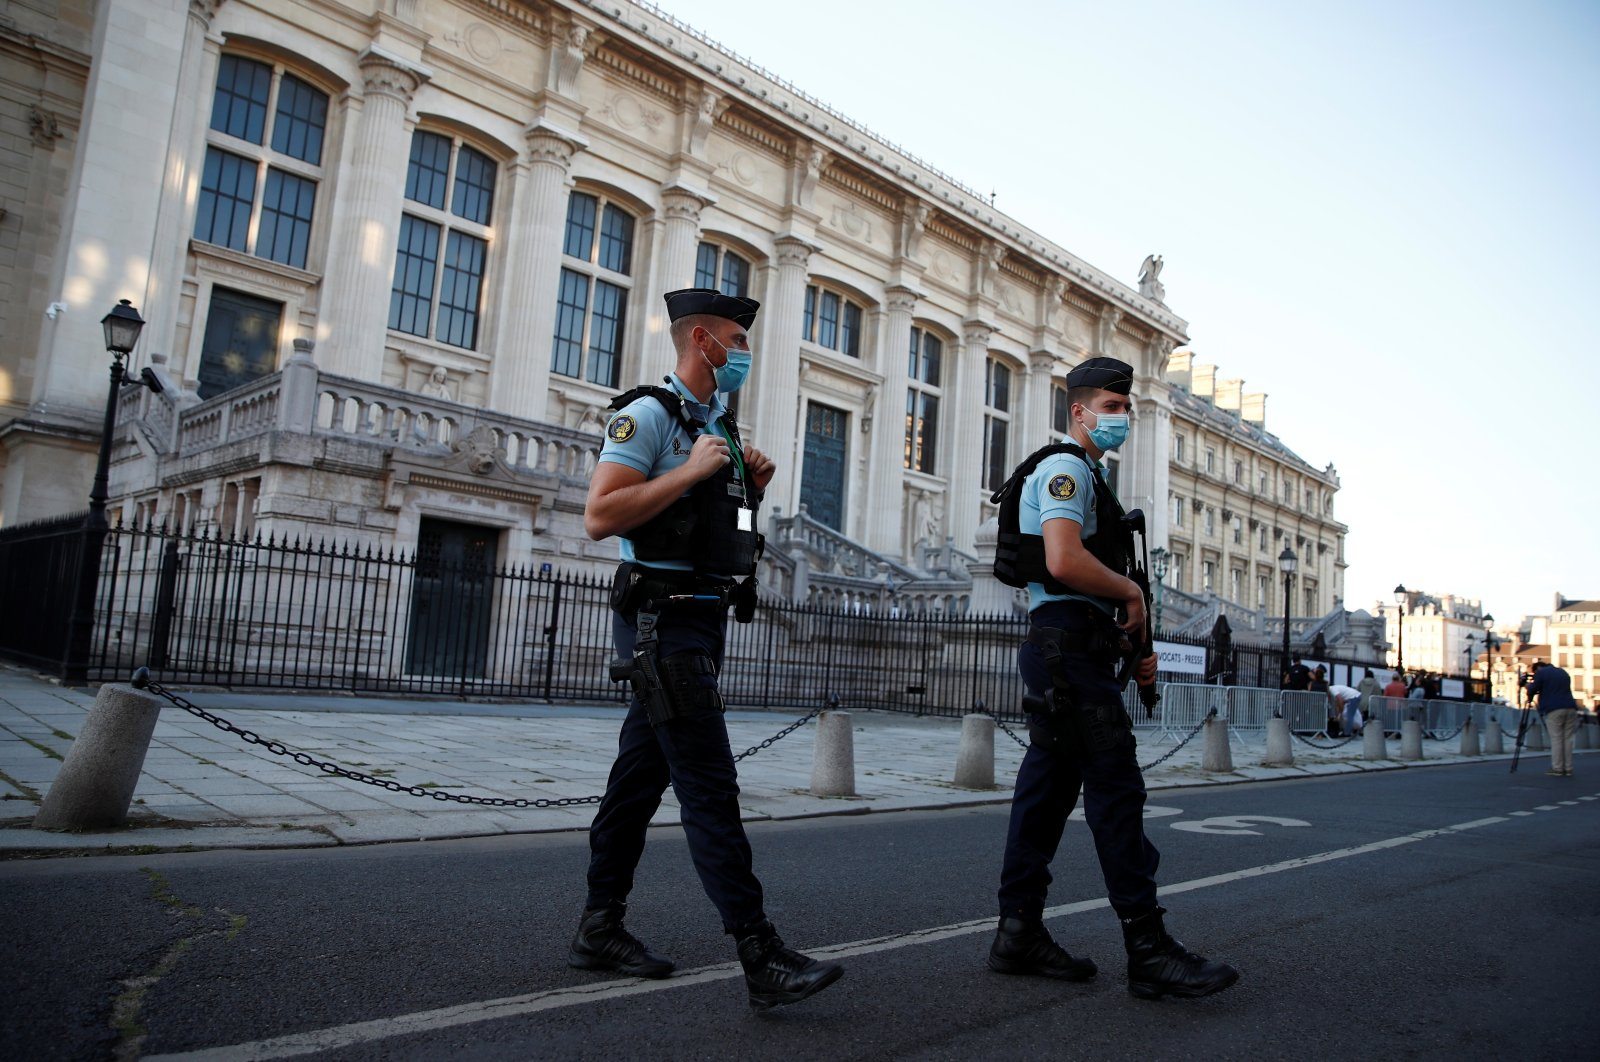 French police forces are seen near the Paris courthouse on the Ile de la Cite before the start of the trial of Paris' November 2015 attacks, in Paris, France, Sept. 8, 2021. (Reuters Photo)